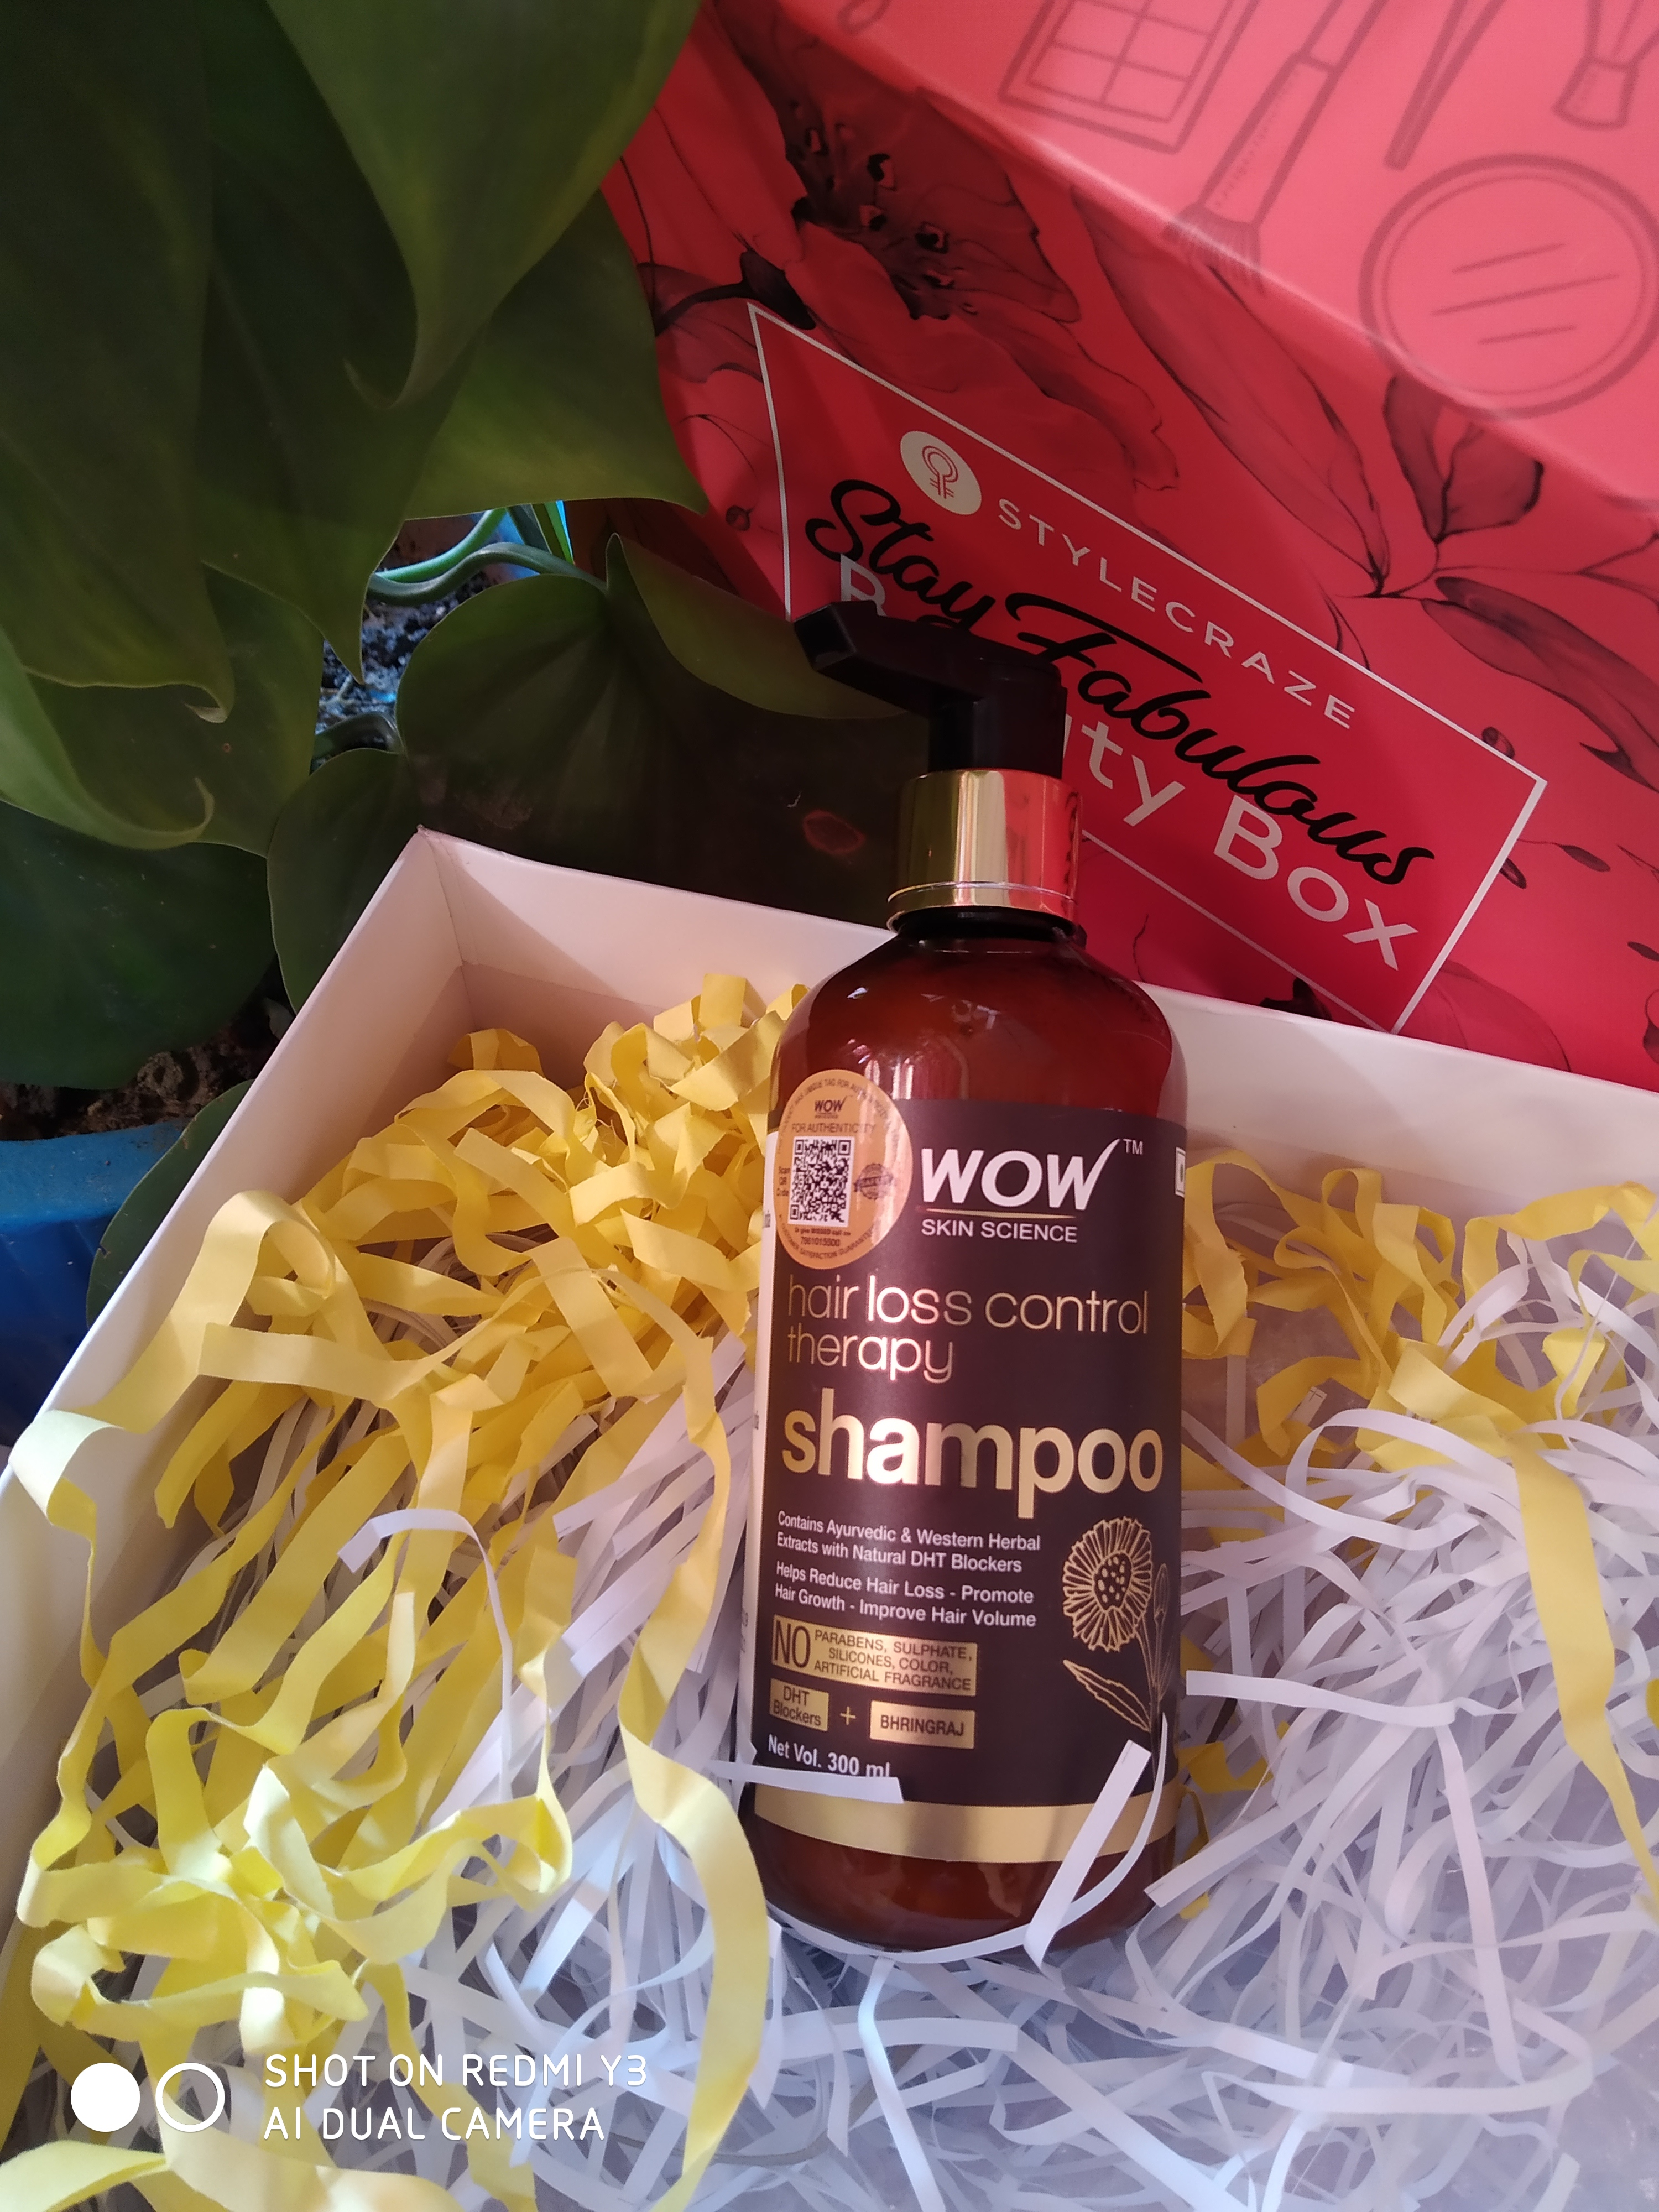 Wow Skin Science Hair Loss Control Therapy Shampoo pic 4-Must recommended hair care product.-By ashima21